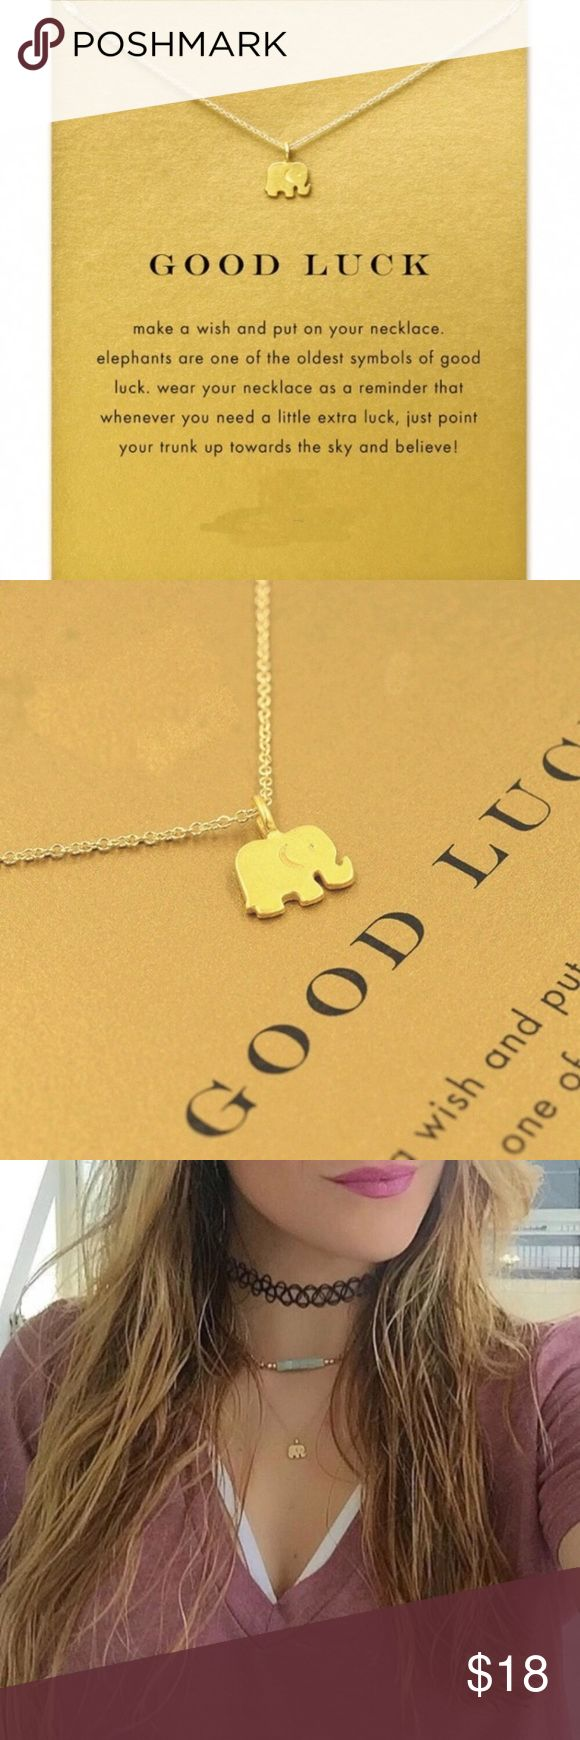 Good Luck Elephant Necklace with Card ⭐️⭐️⭐️⭐️⭐️ 5 star rated! Dogeared-style Good Luck Elephant necklace with card. Gold dipped. Makes a beautiful gift! ✨14k gold dipped✨  Bundle discount available!  🍍Suggested User! 🍍5 Star Rated Seller!  🍍Same or next day shipper! 🚫No trades! ❌No half price offers Pineapple.PalmBeach Jewelry Necklaces